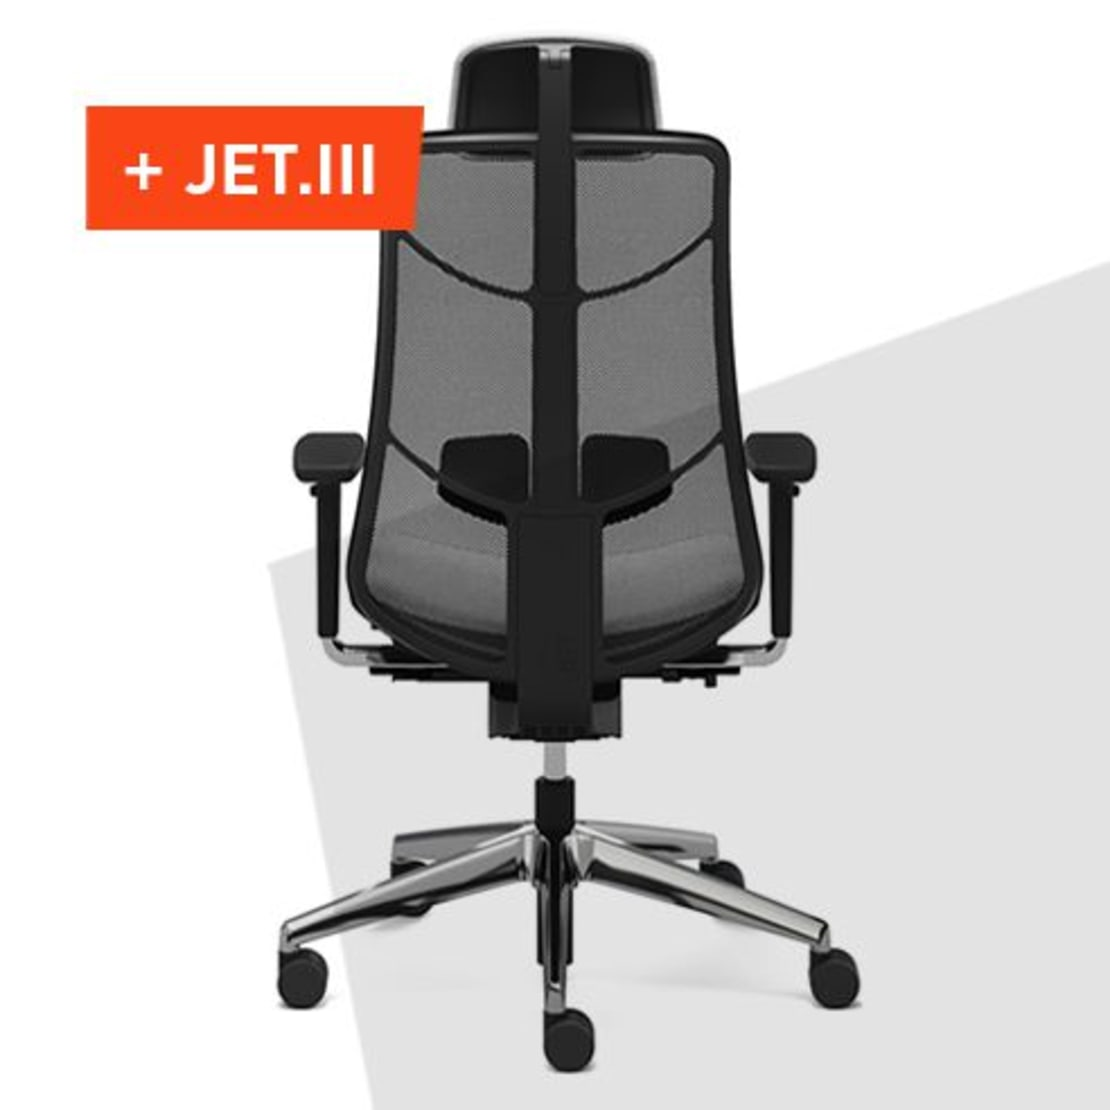 The innovative office swivel chair JET.III optimally supports the movements of the body.